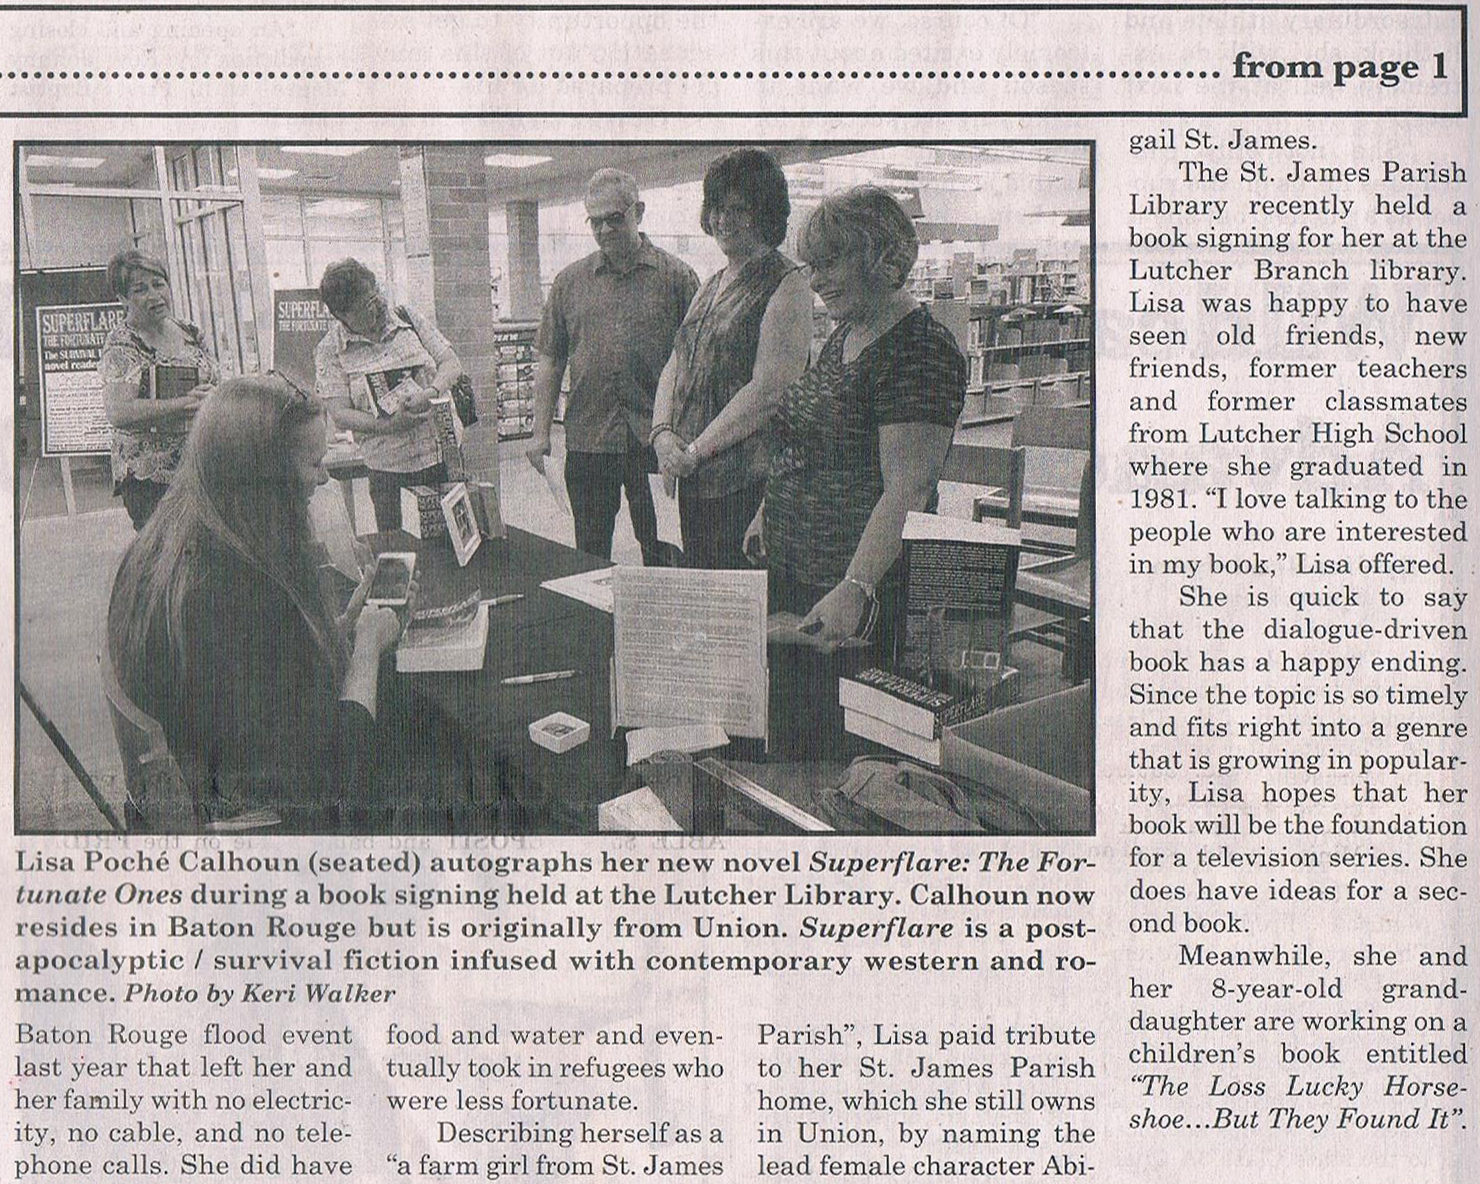 The News Examiner Article